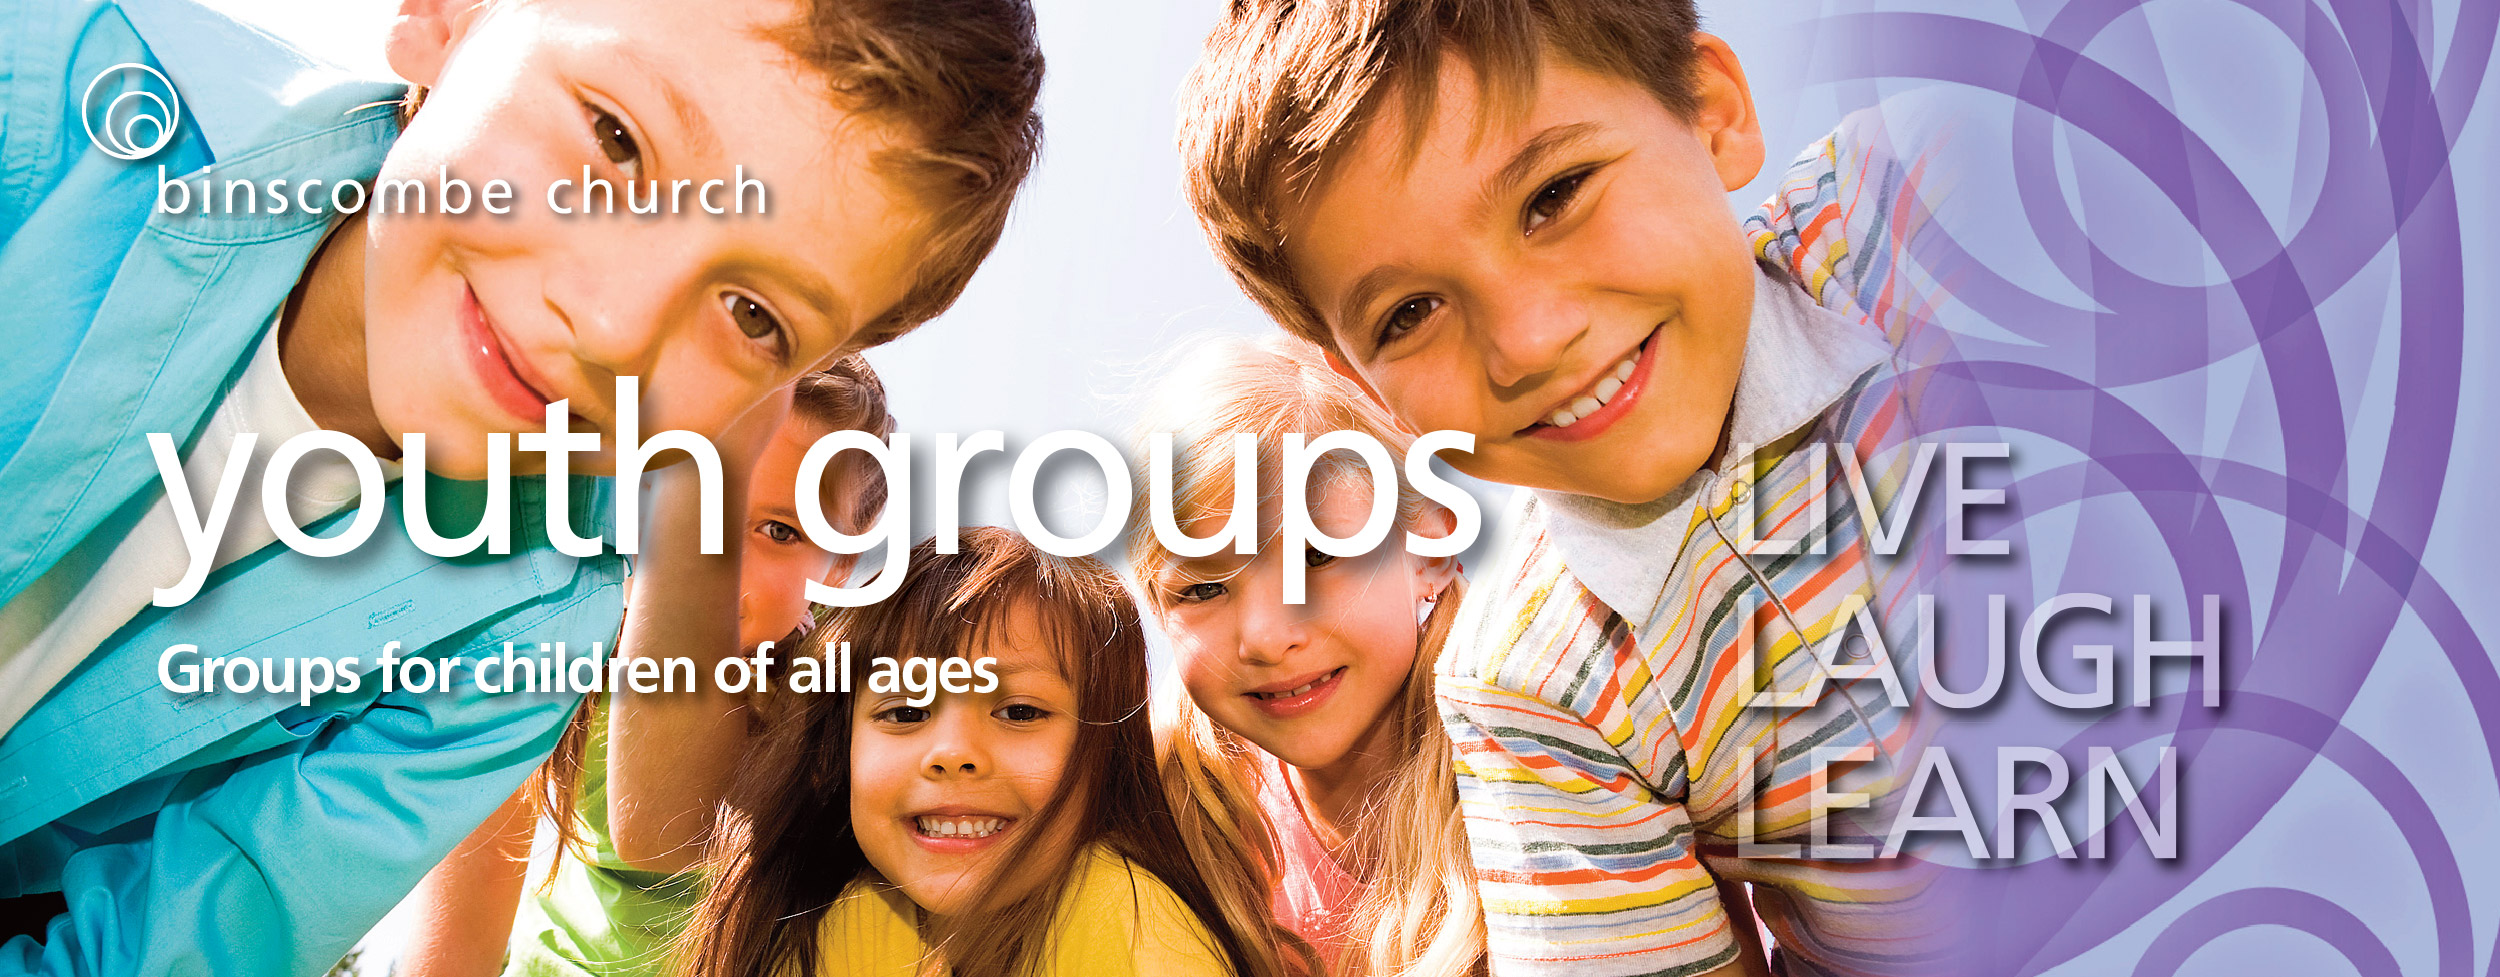 Youth groups - for children of all ages